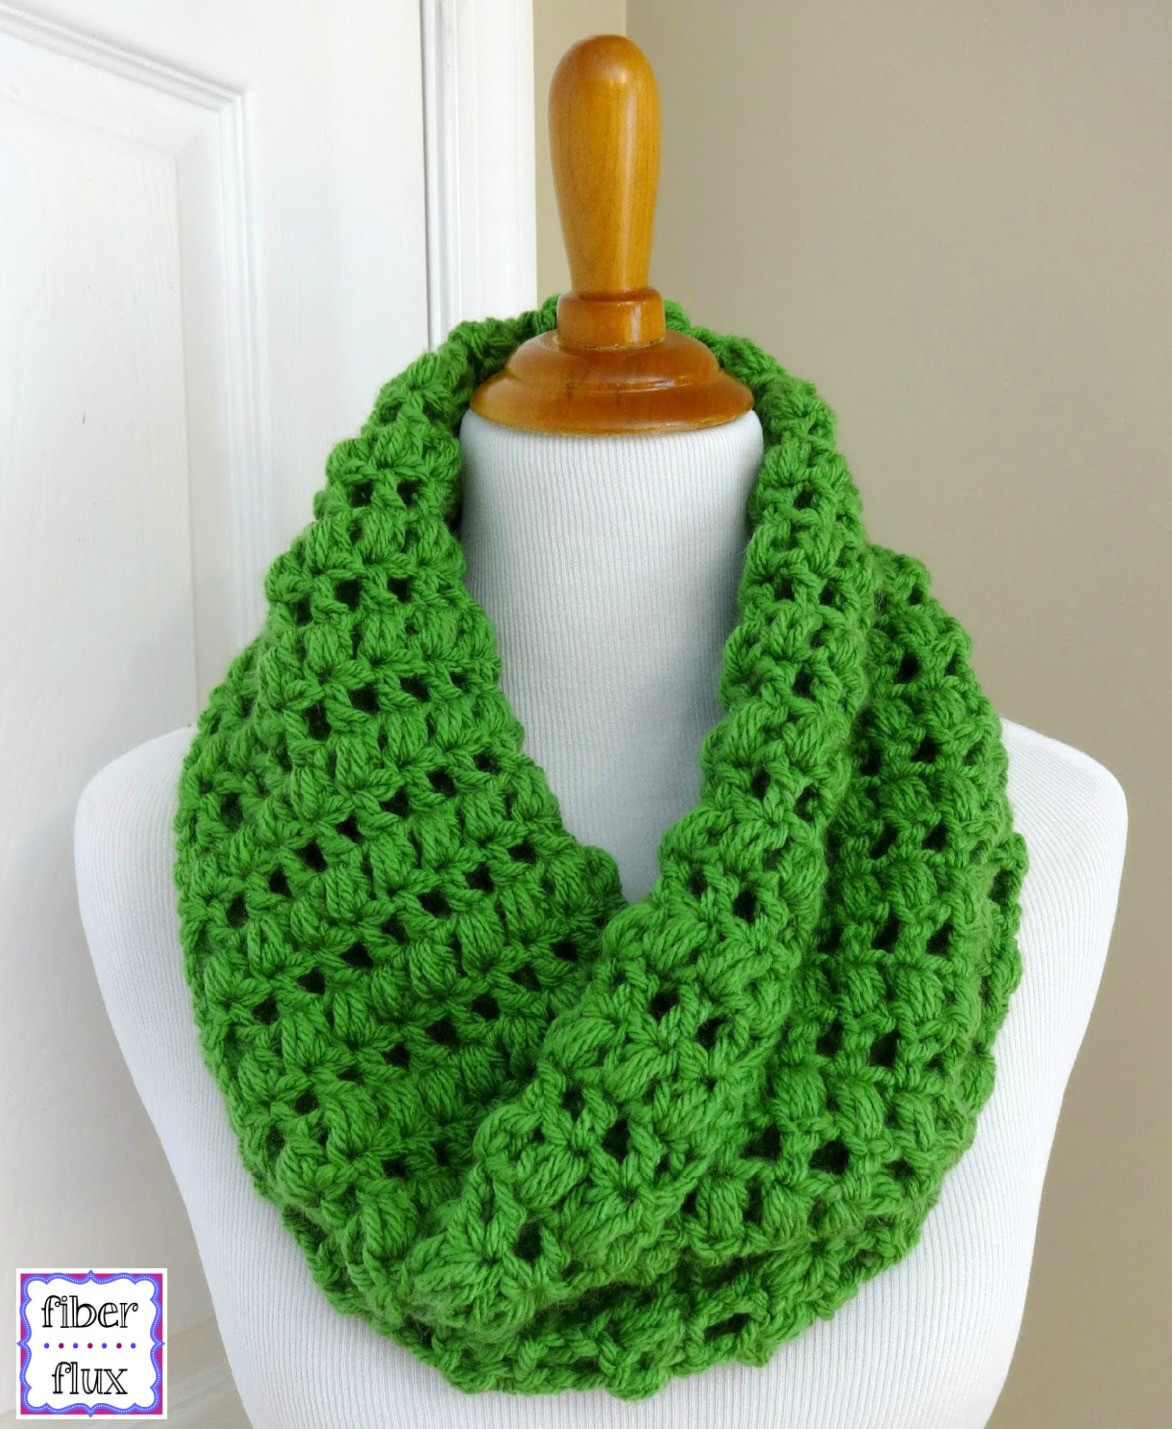 All Free Crochet Best Of Fiber Flux Free Crochet Patterns Of Perfect 41 Ideas All Free Crochet